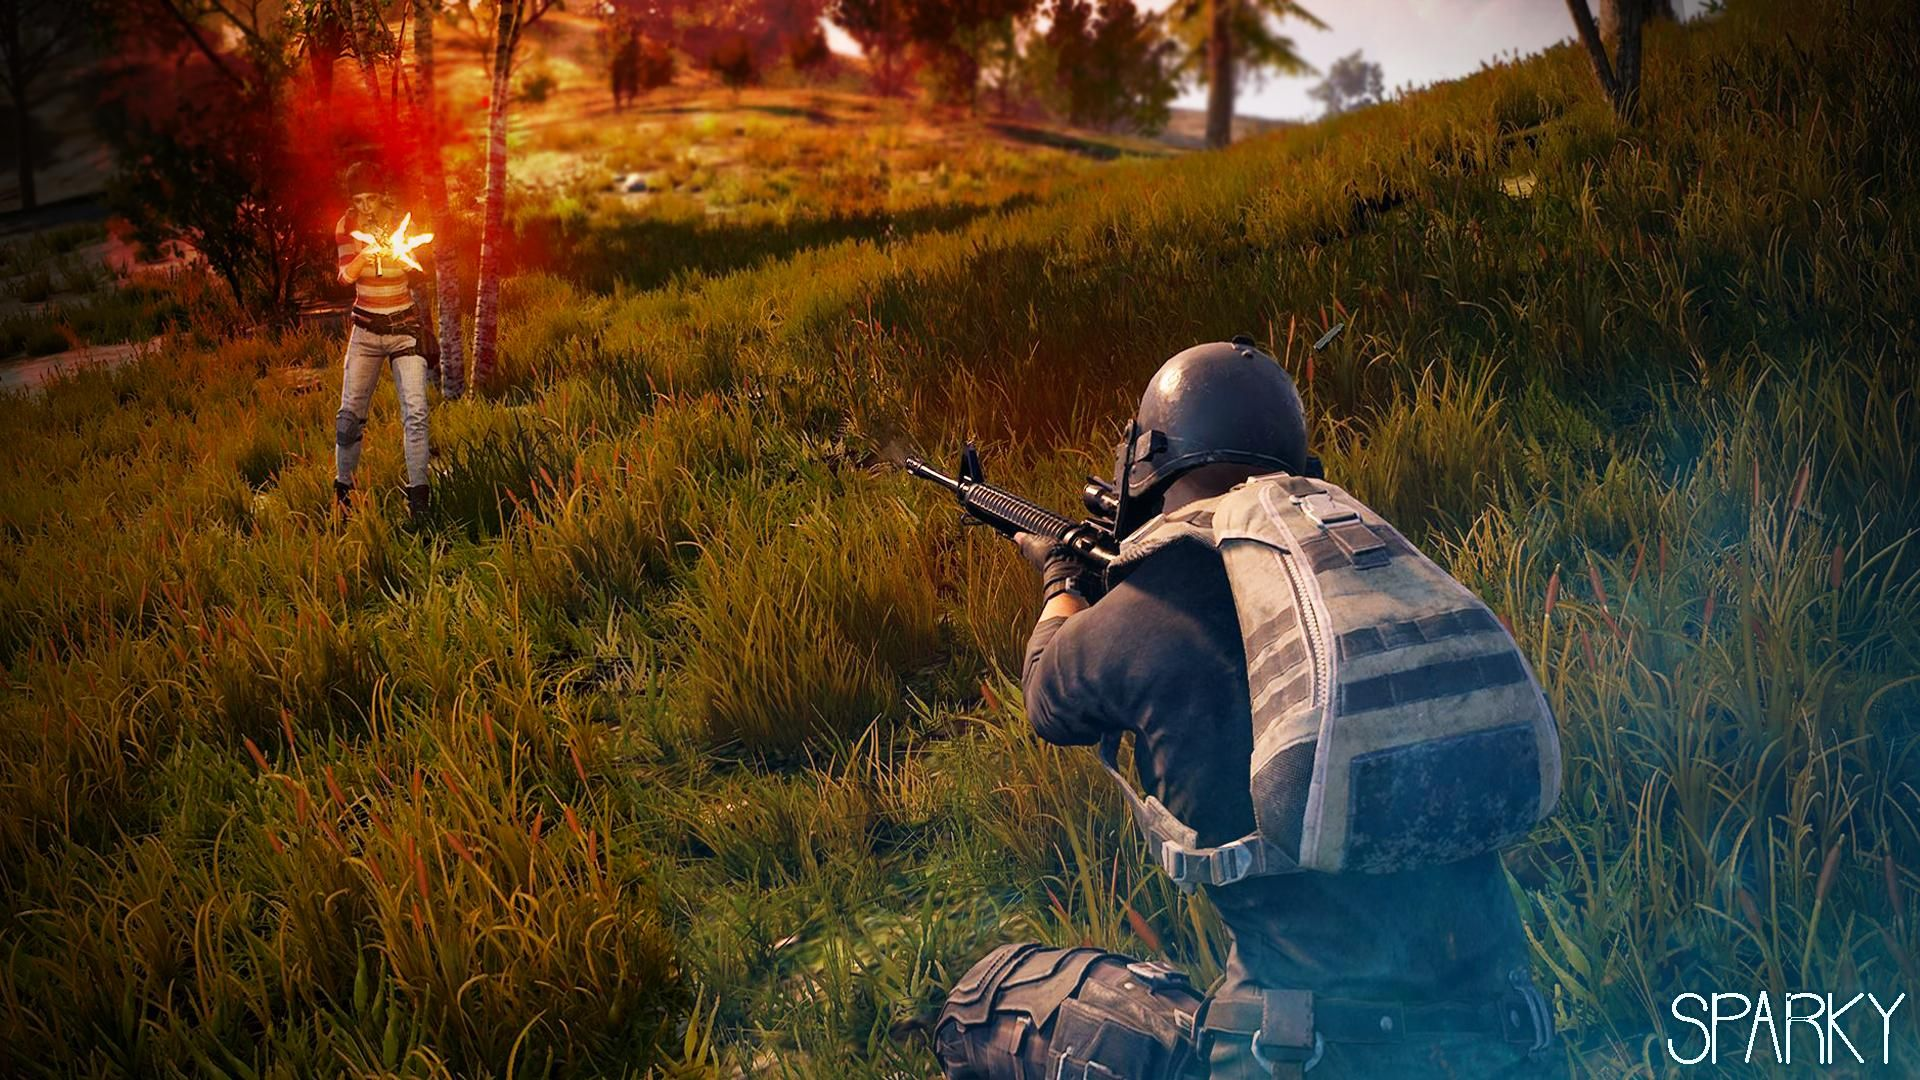 Pubg Wallpaper In Hd: PUBG HD Wallpaper (1920x1080) Need #iPhone #6S #Plus